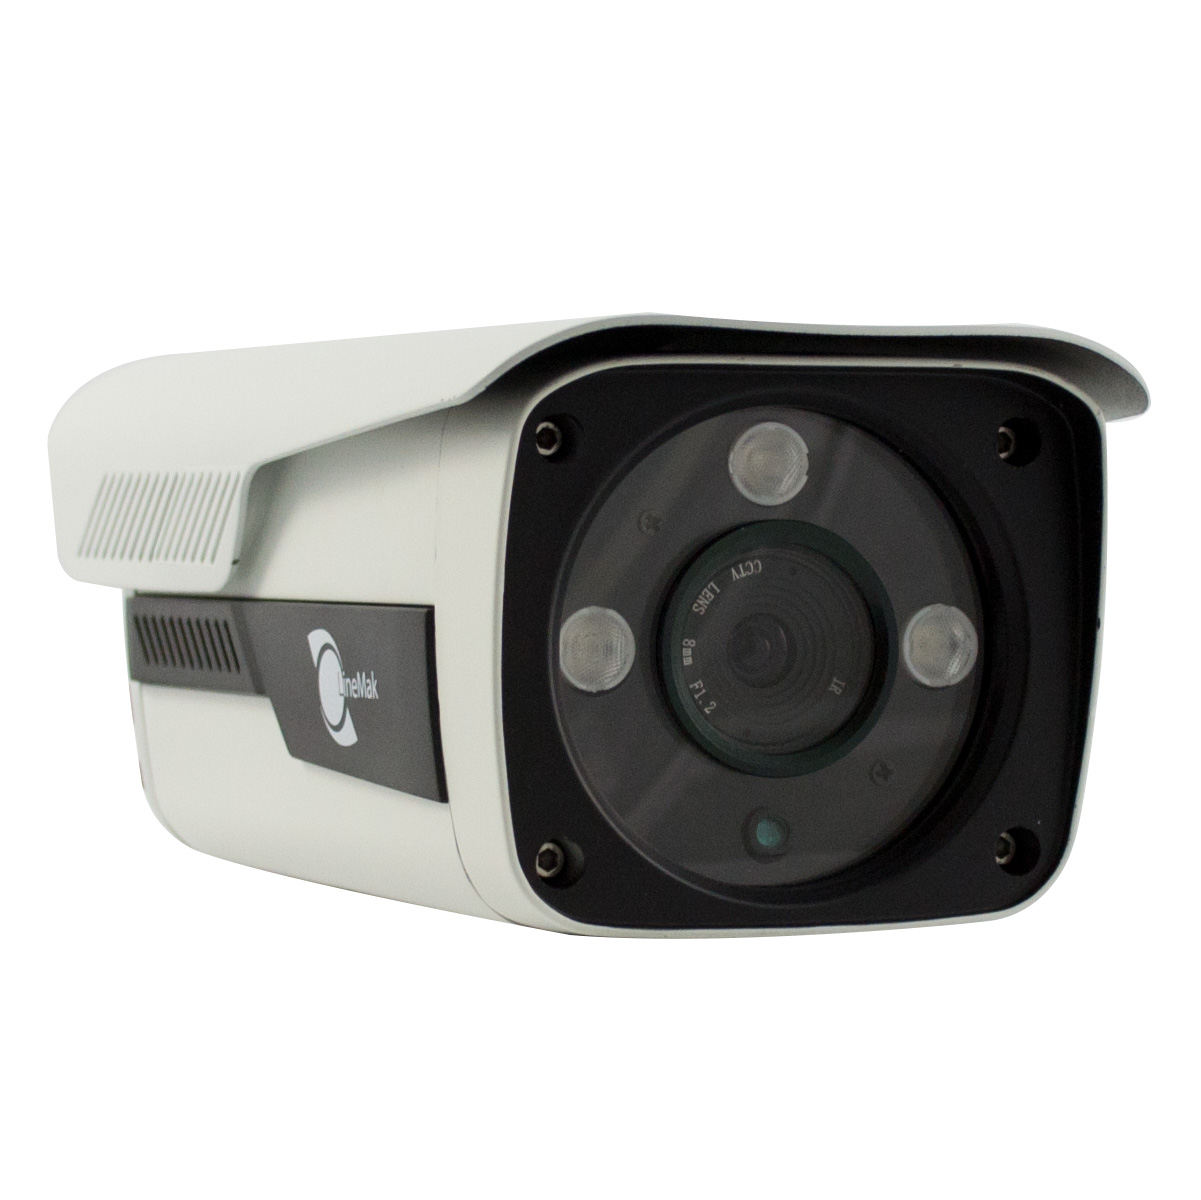 IR Bullet camera 1/2.5 SONY CCD 1.3Mp 8mm lens 3 LEDs Array IP66 - Image 1